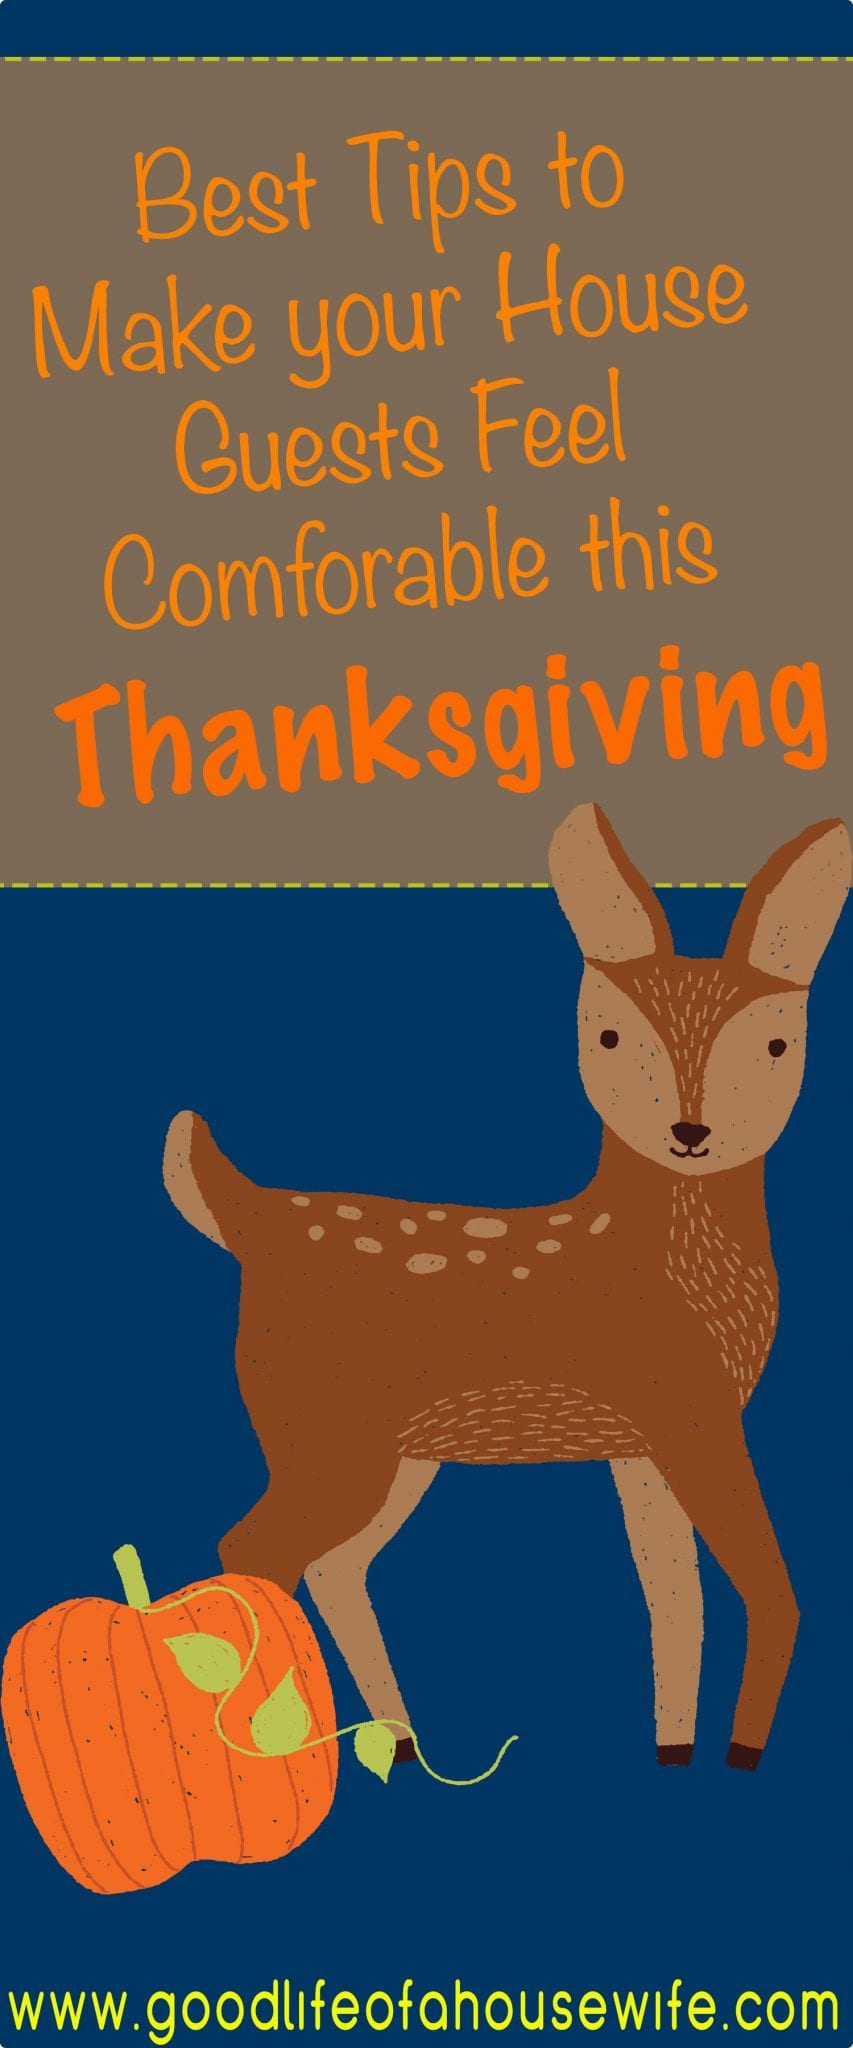 How to Make Guest Feel Welcome this Thanksgiving www.goodlifeofahousewife.com